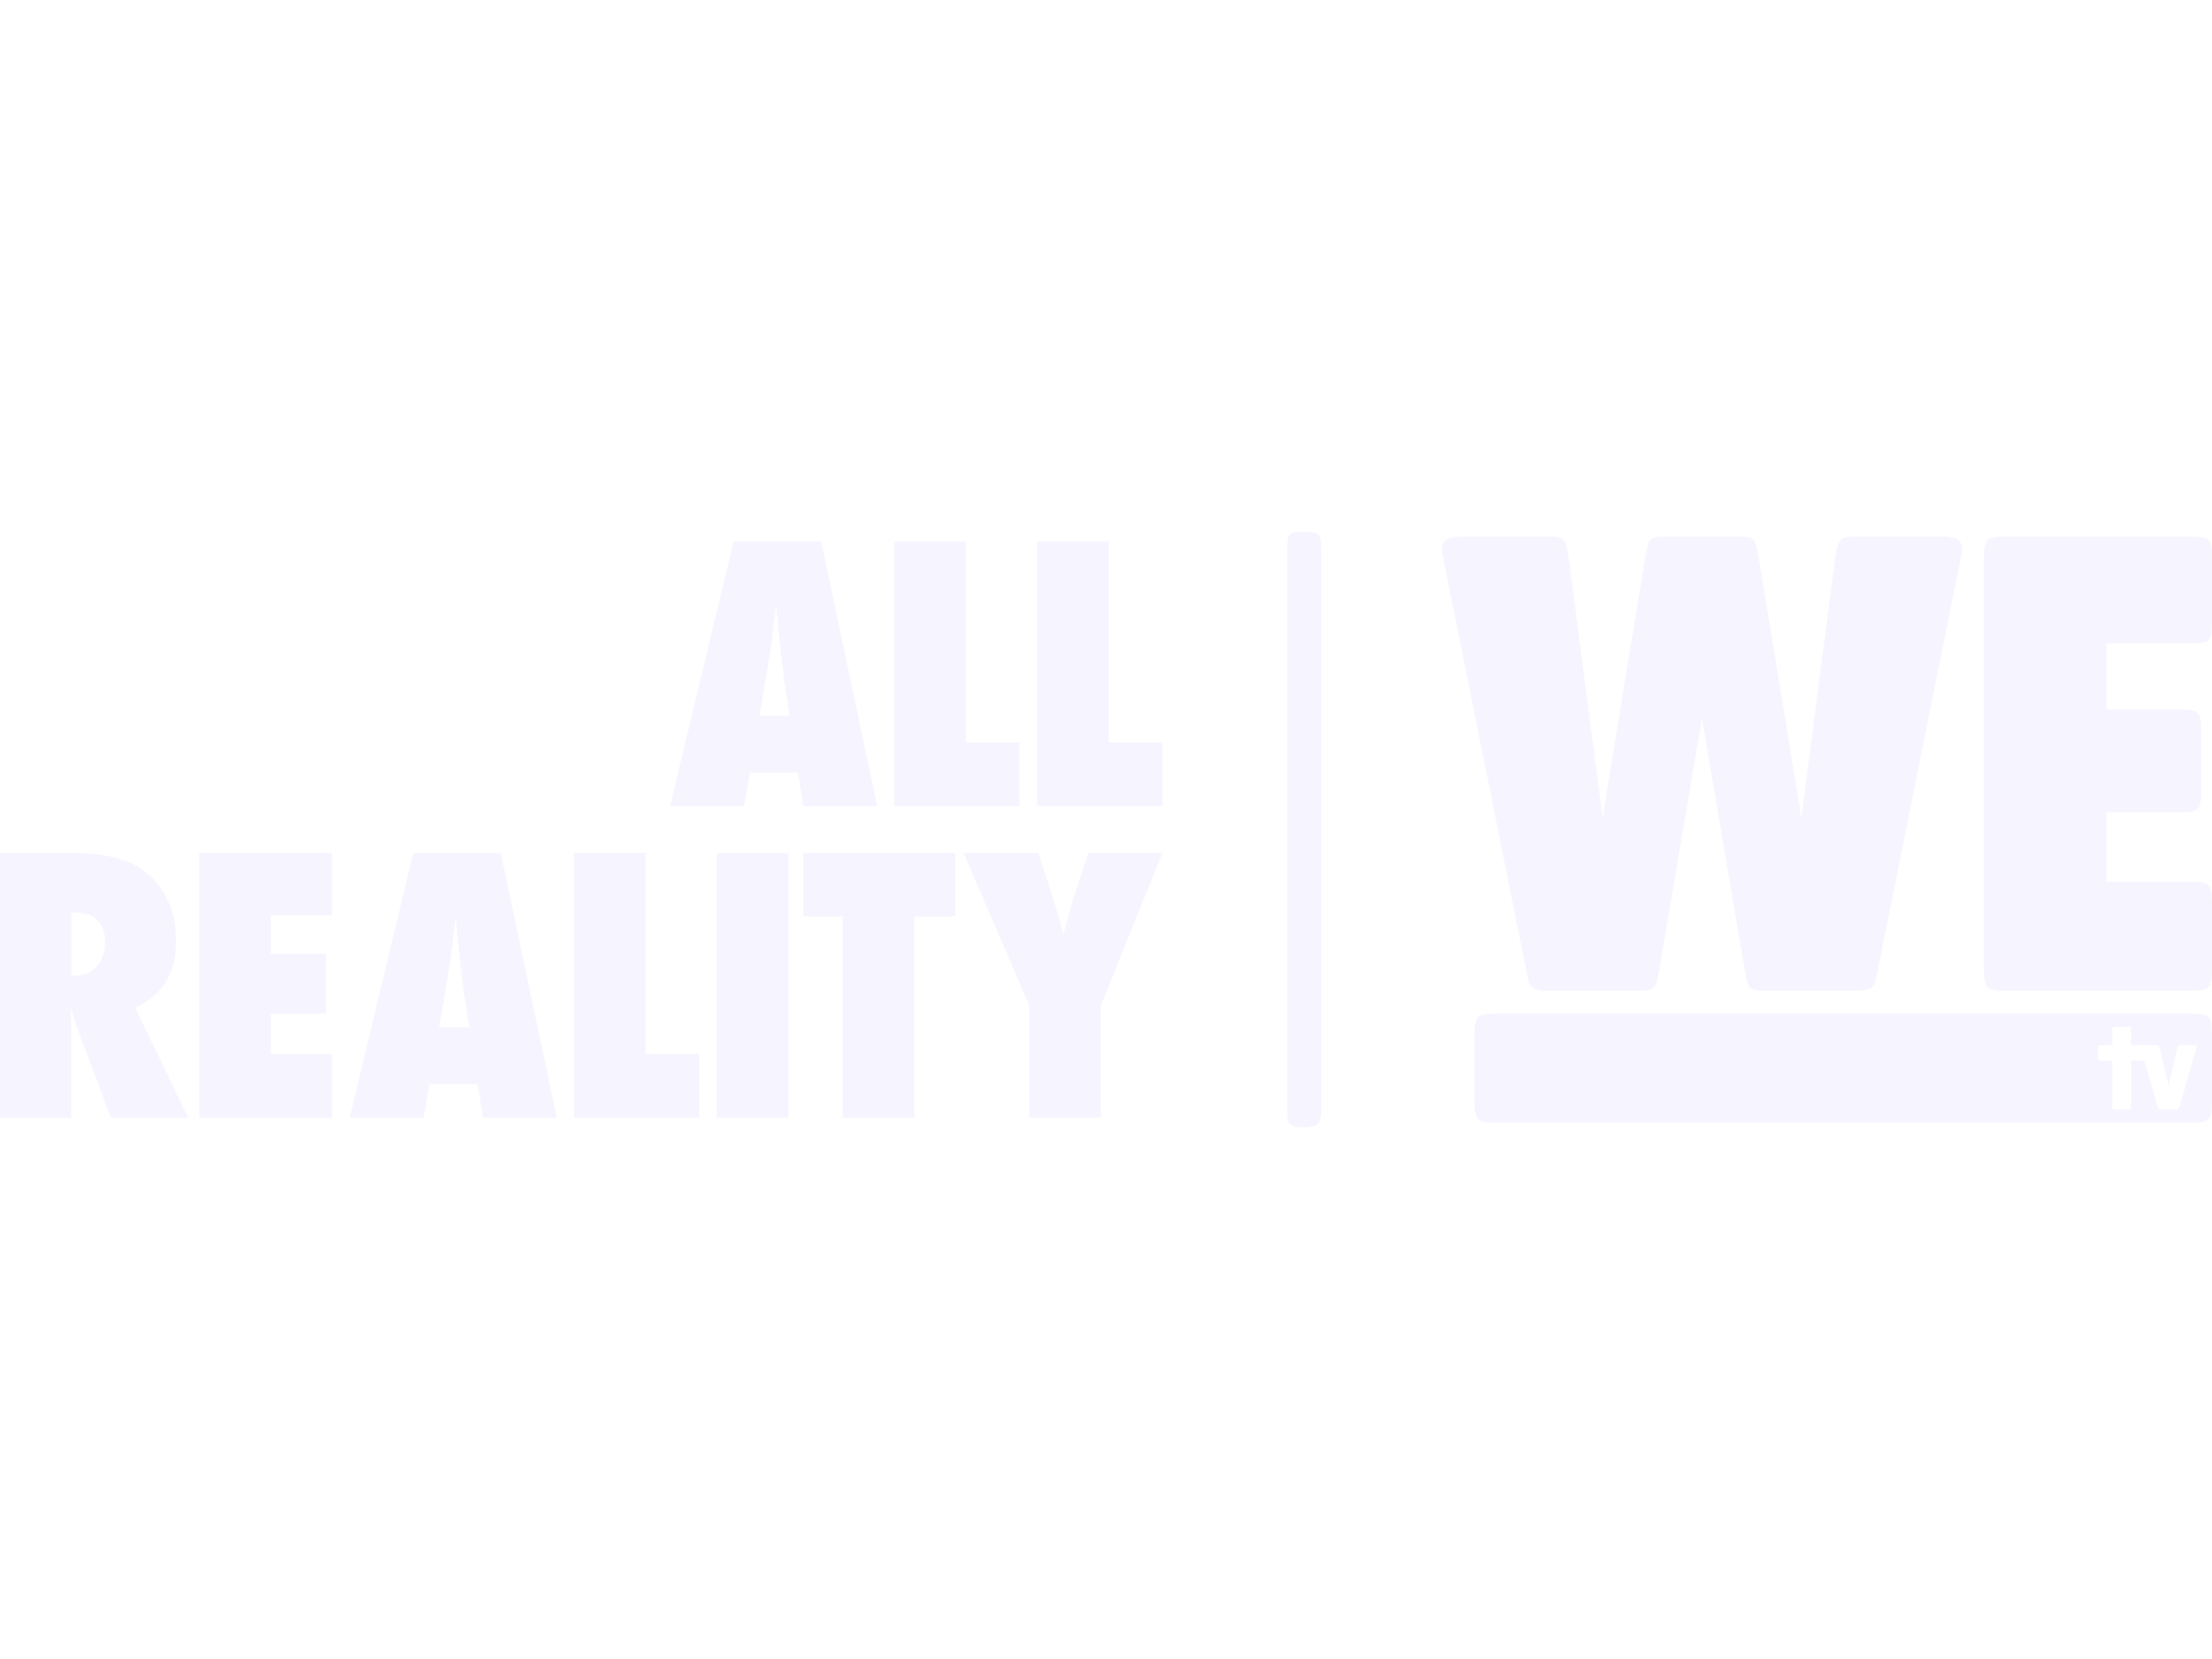 All Reality WE tv